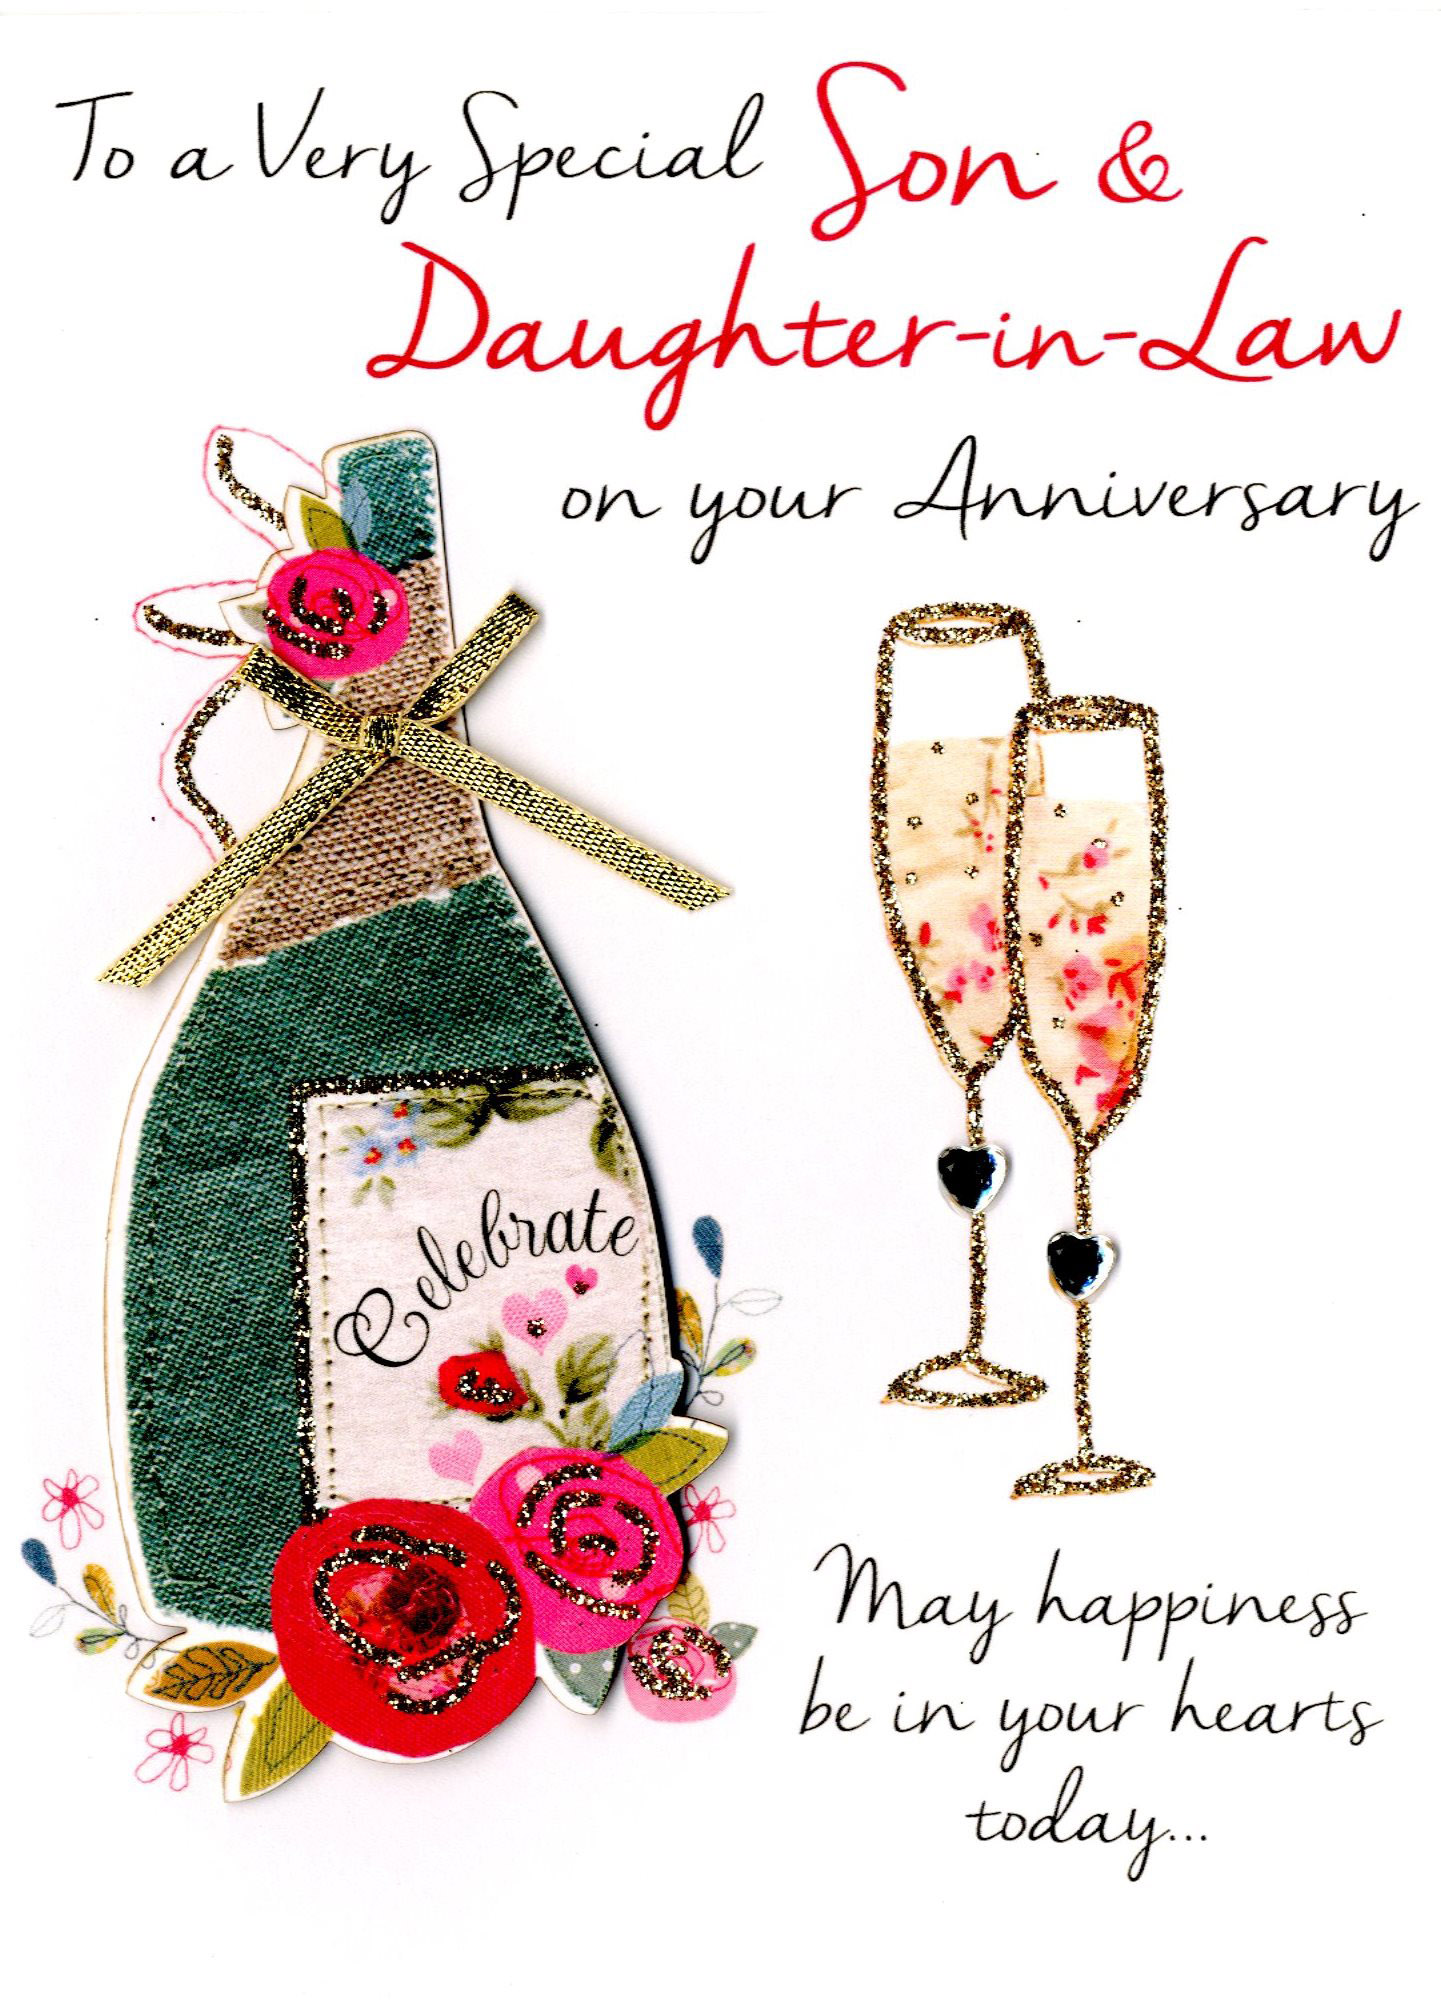 First Wedding Anniversary Gifts For Son And Daughter In Law: Son & Daughter-In-Law Anniversary Greeting Card